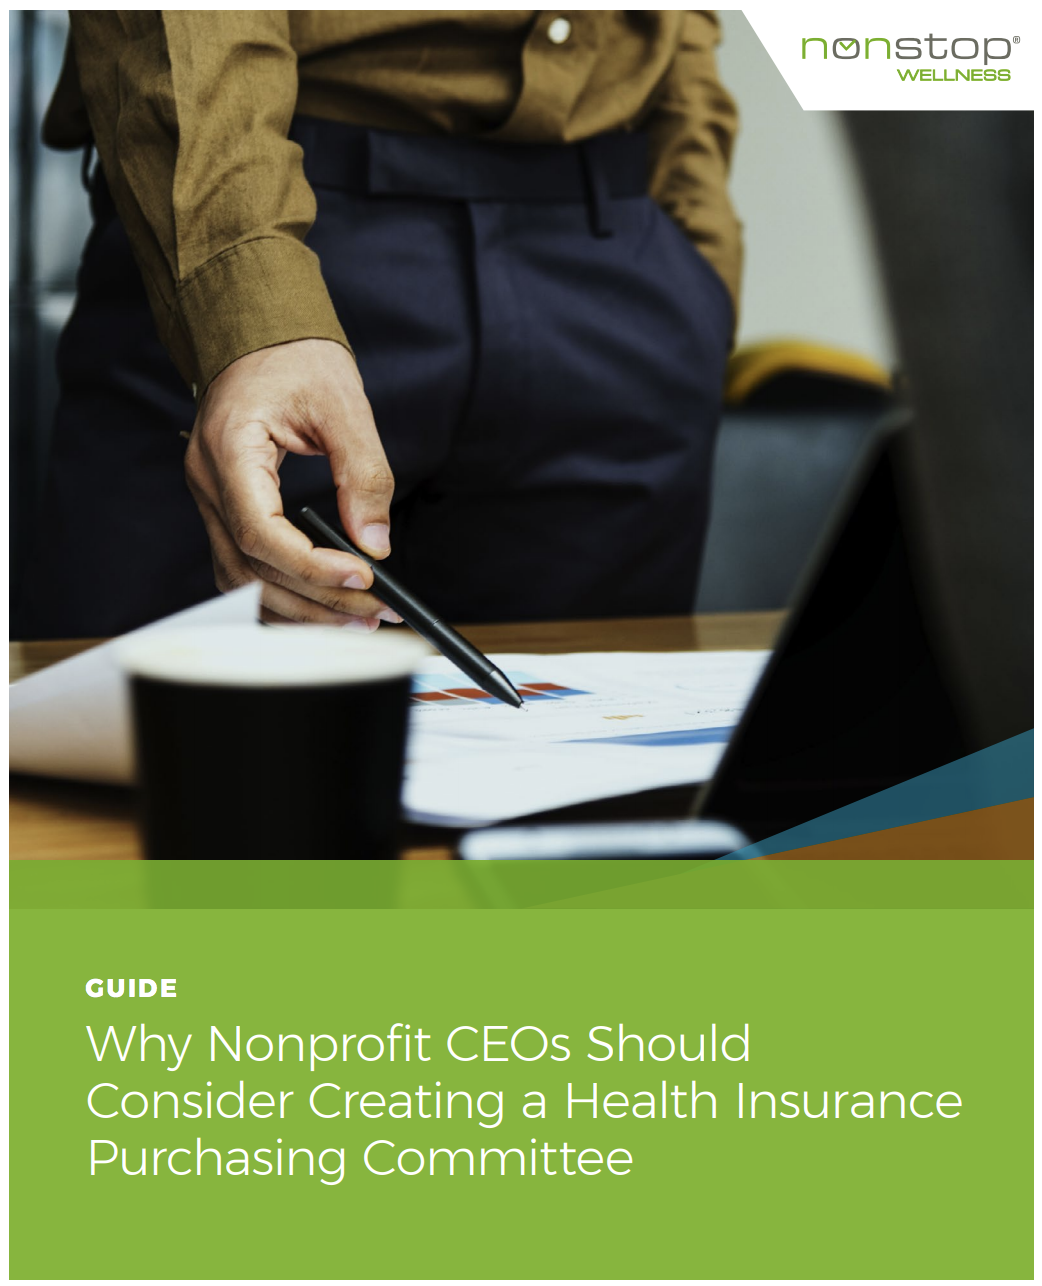 Cover-2018-0731-Nonstop-Whitepaper-Healthcare_Purchasing_Committee-Nonprofits